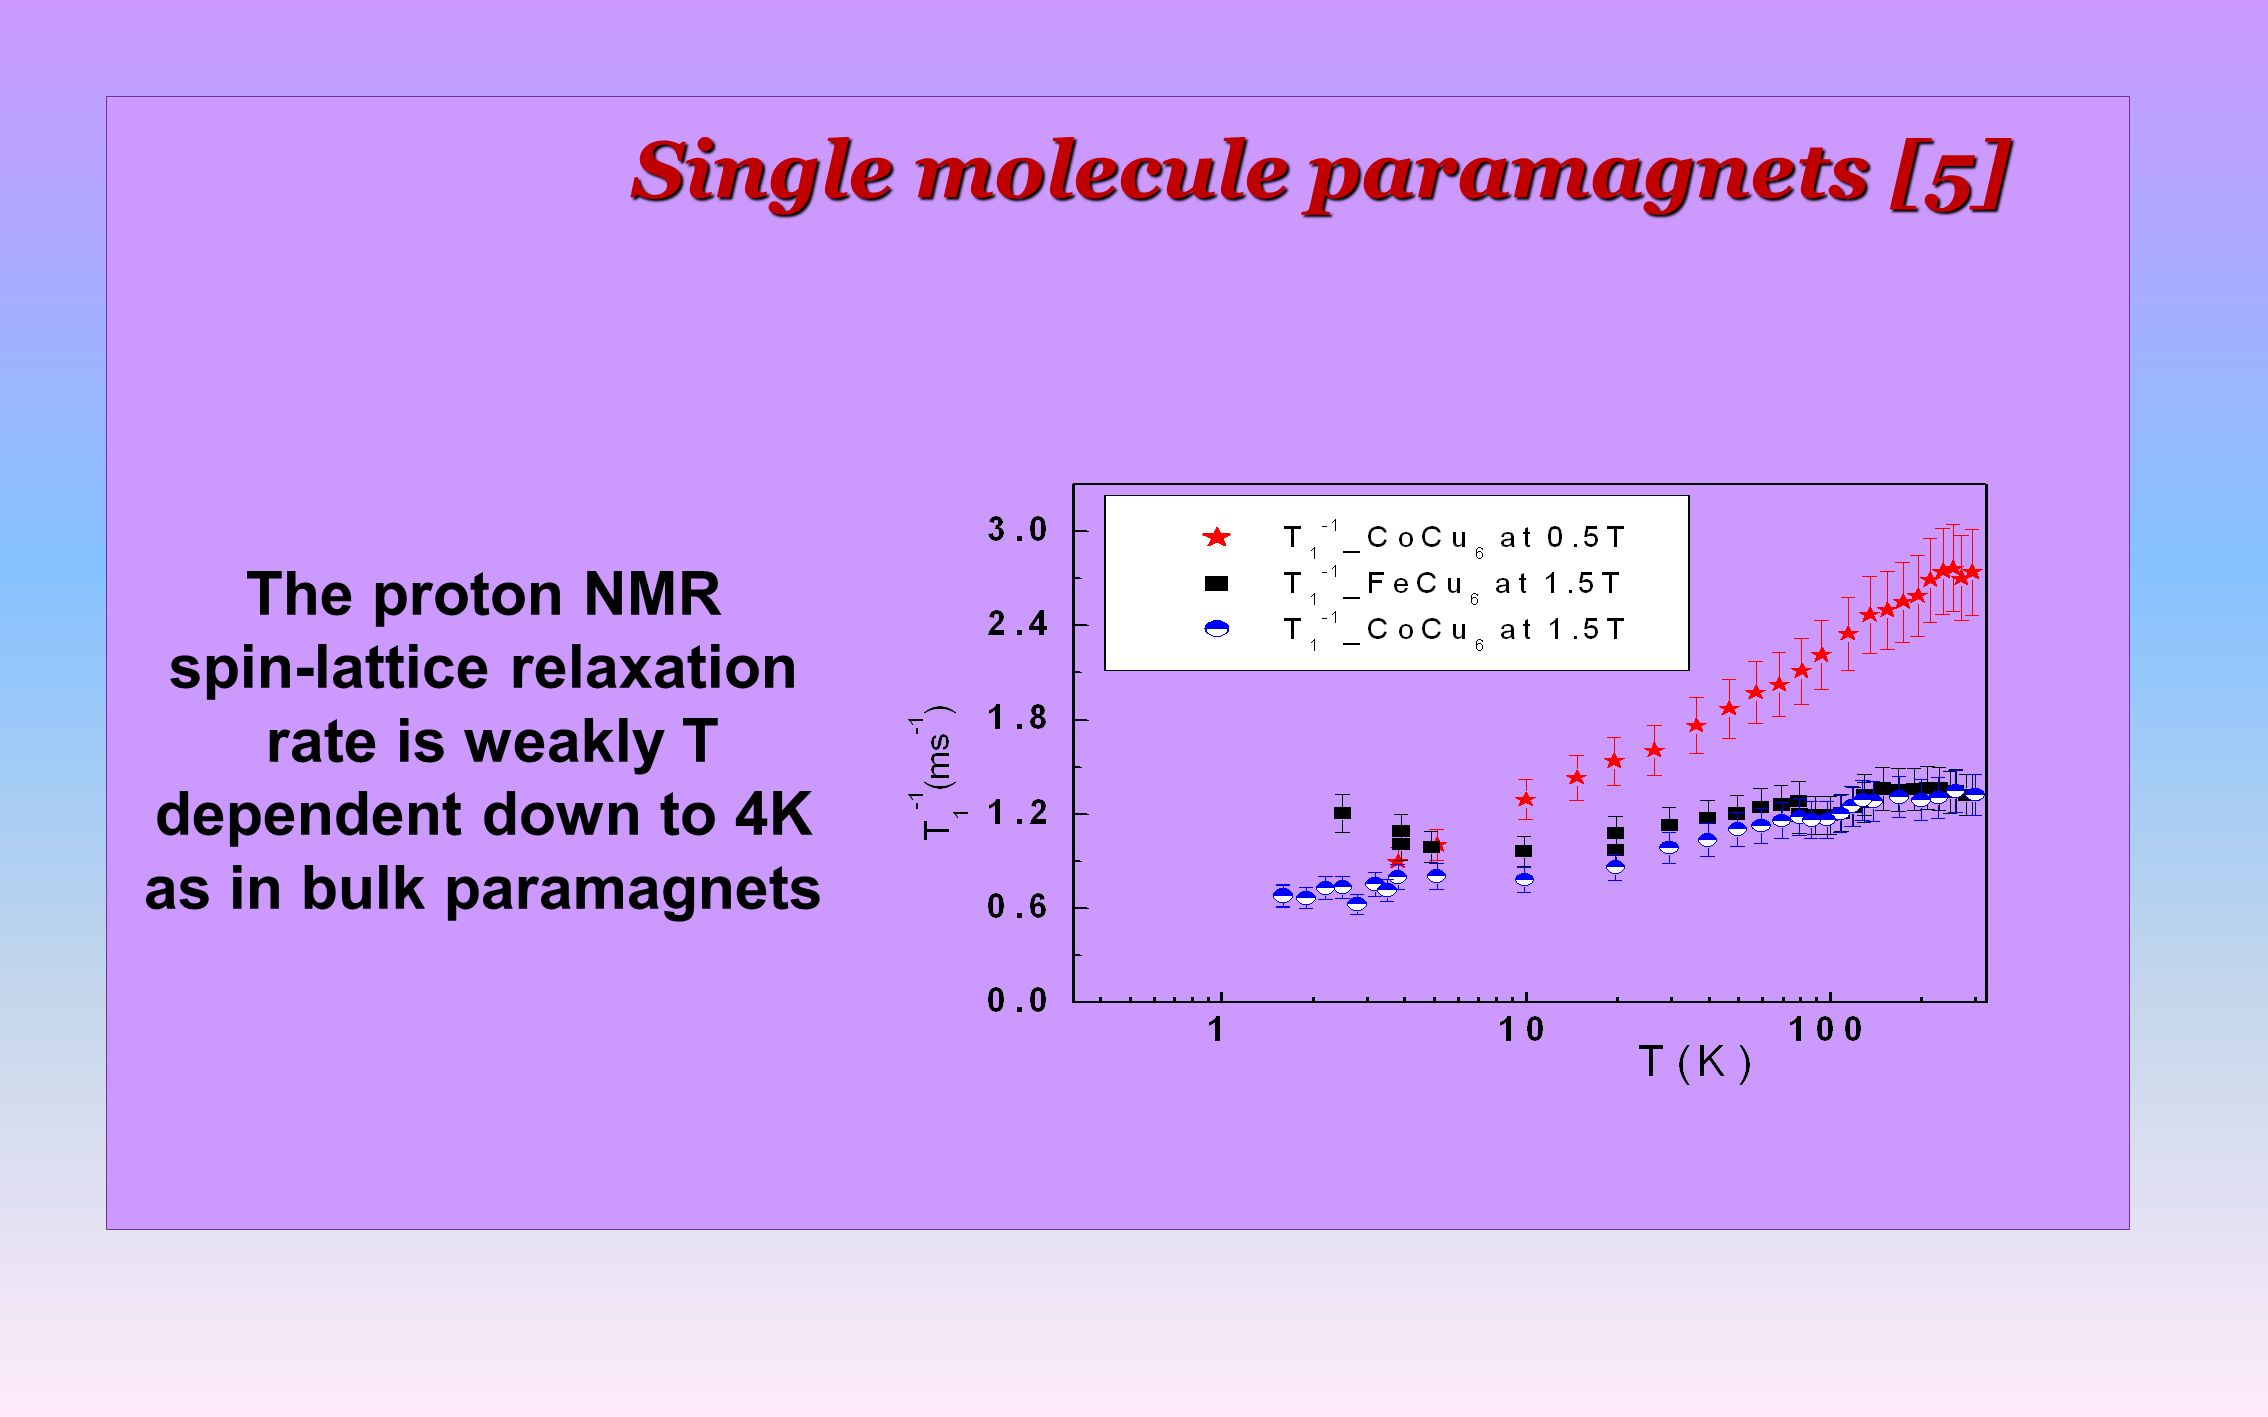 Single molecule paramagnets [5] The proton NMR spin-lattice relaxation rate is weakly T dependent down to 4K as in bulk paramagnets